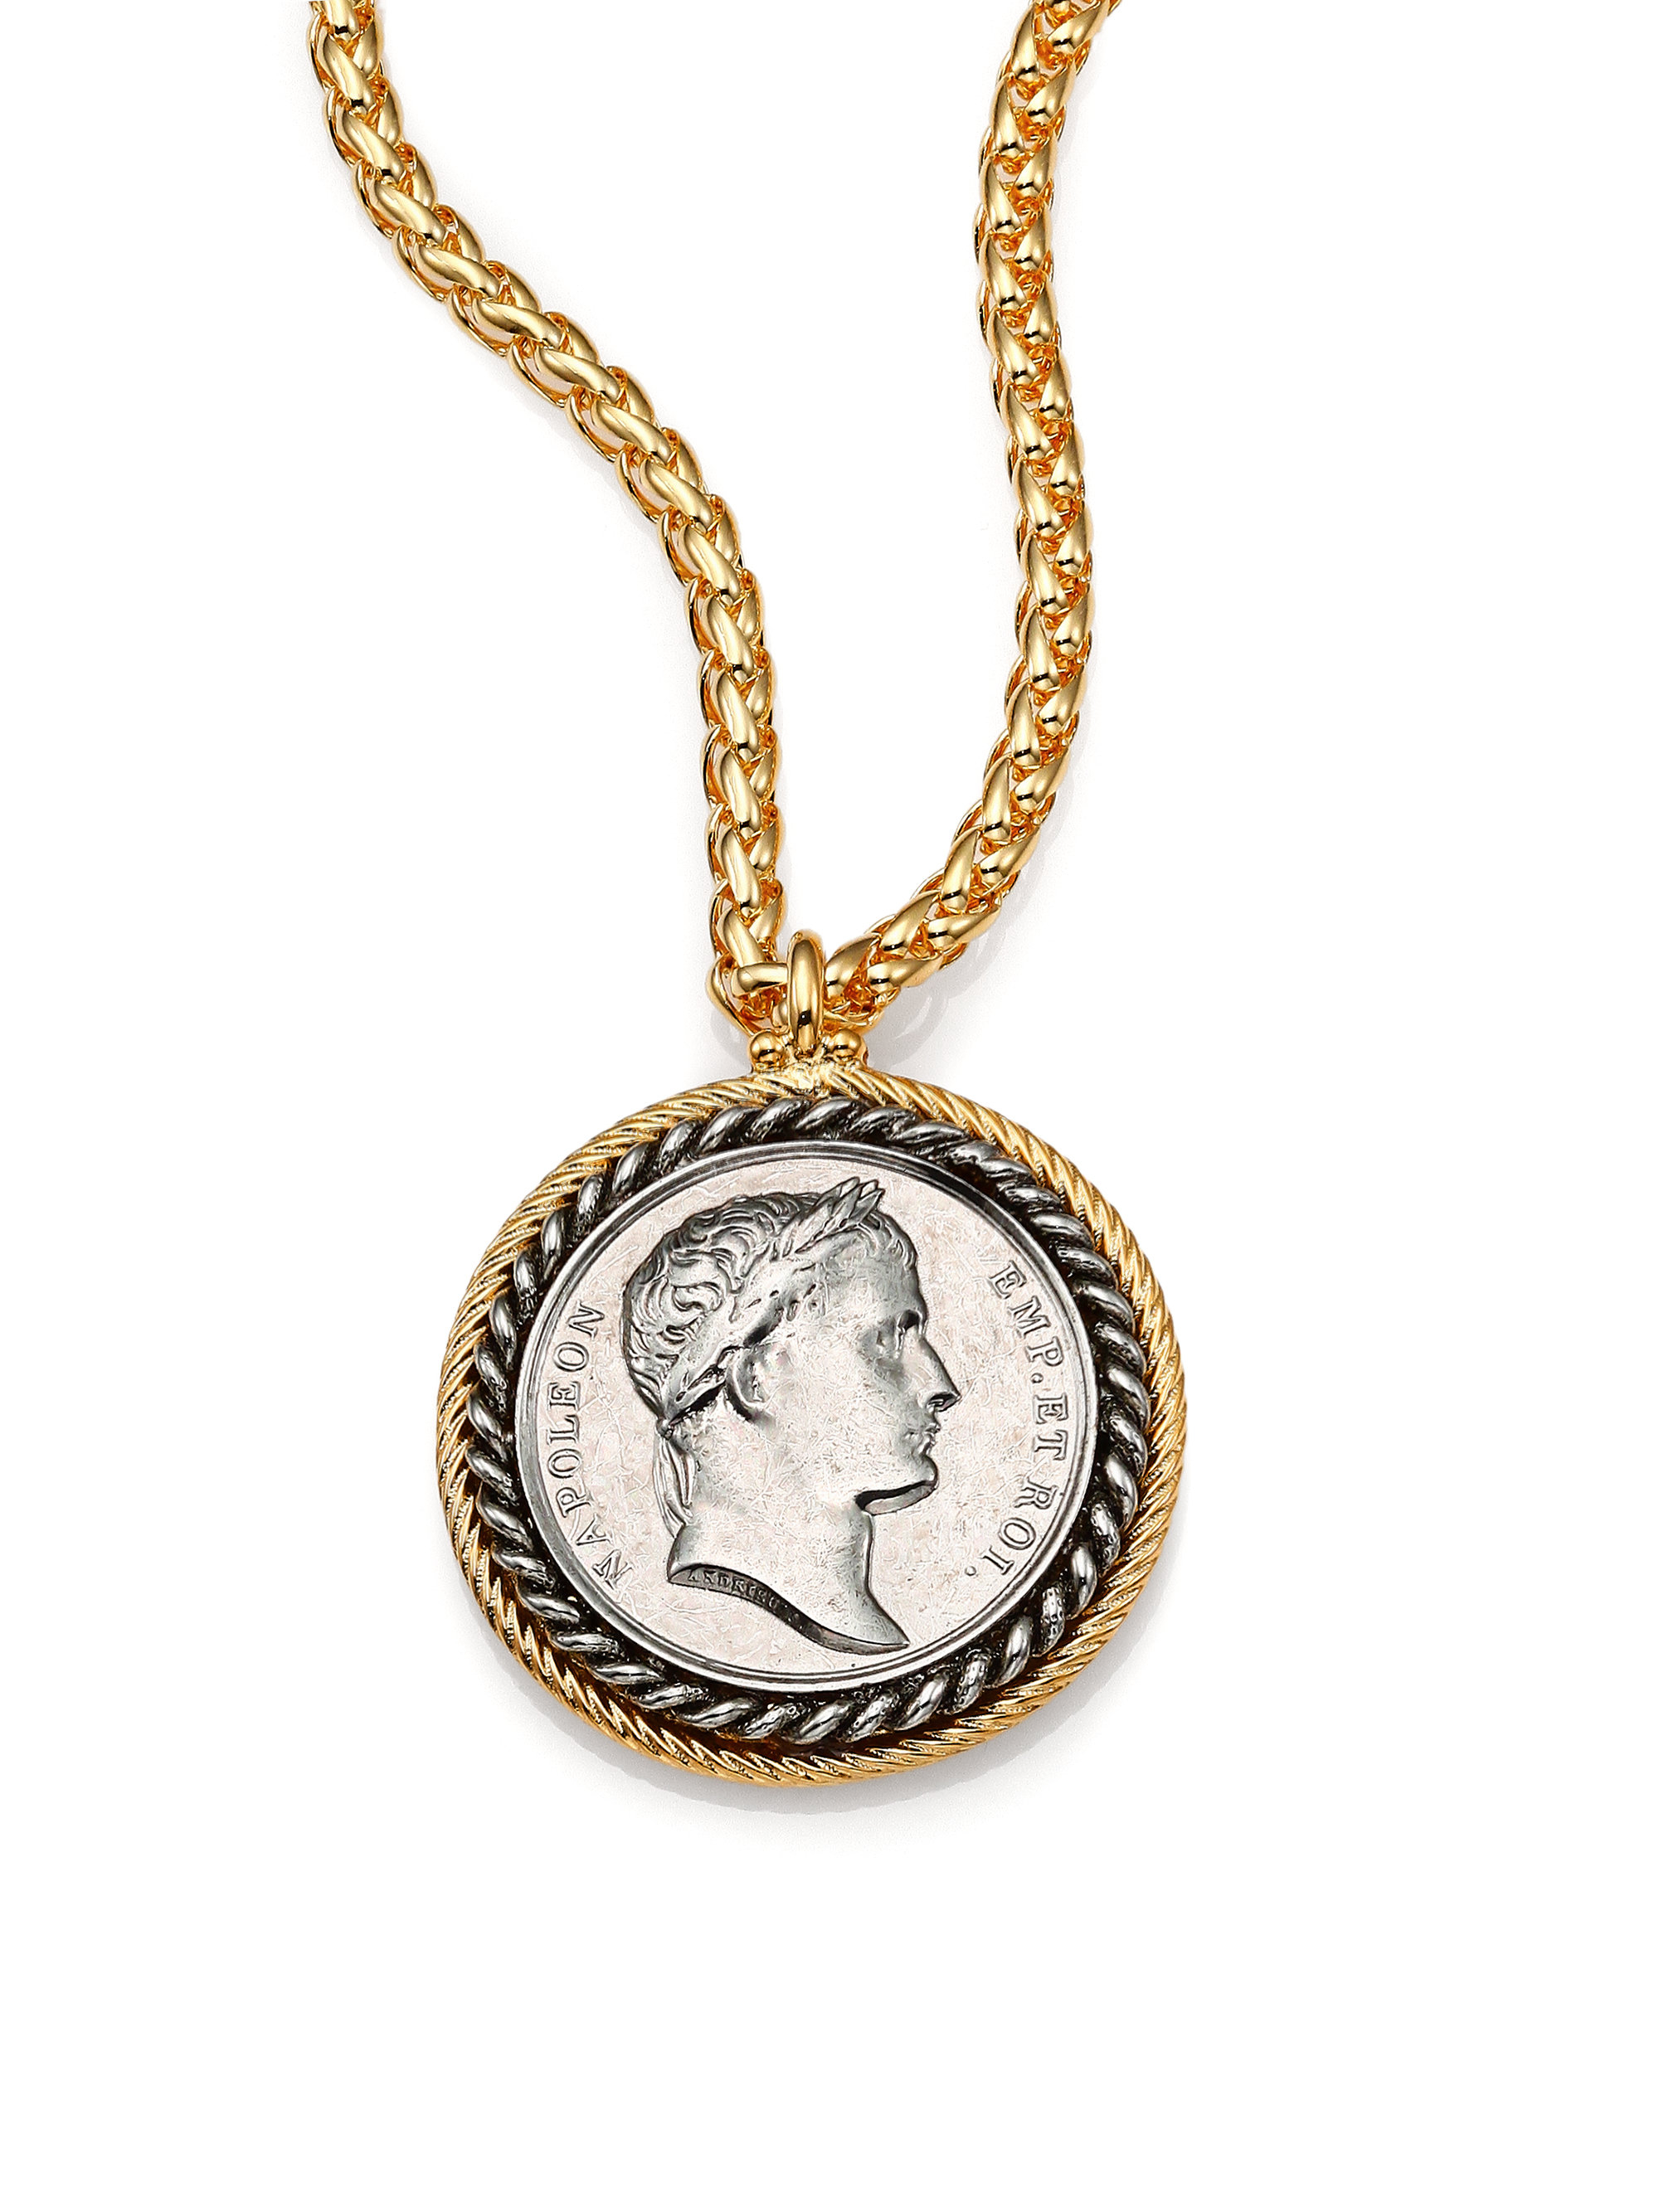 kenneth framed coin pendant necklace in